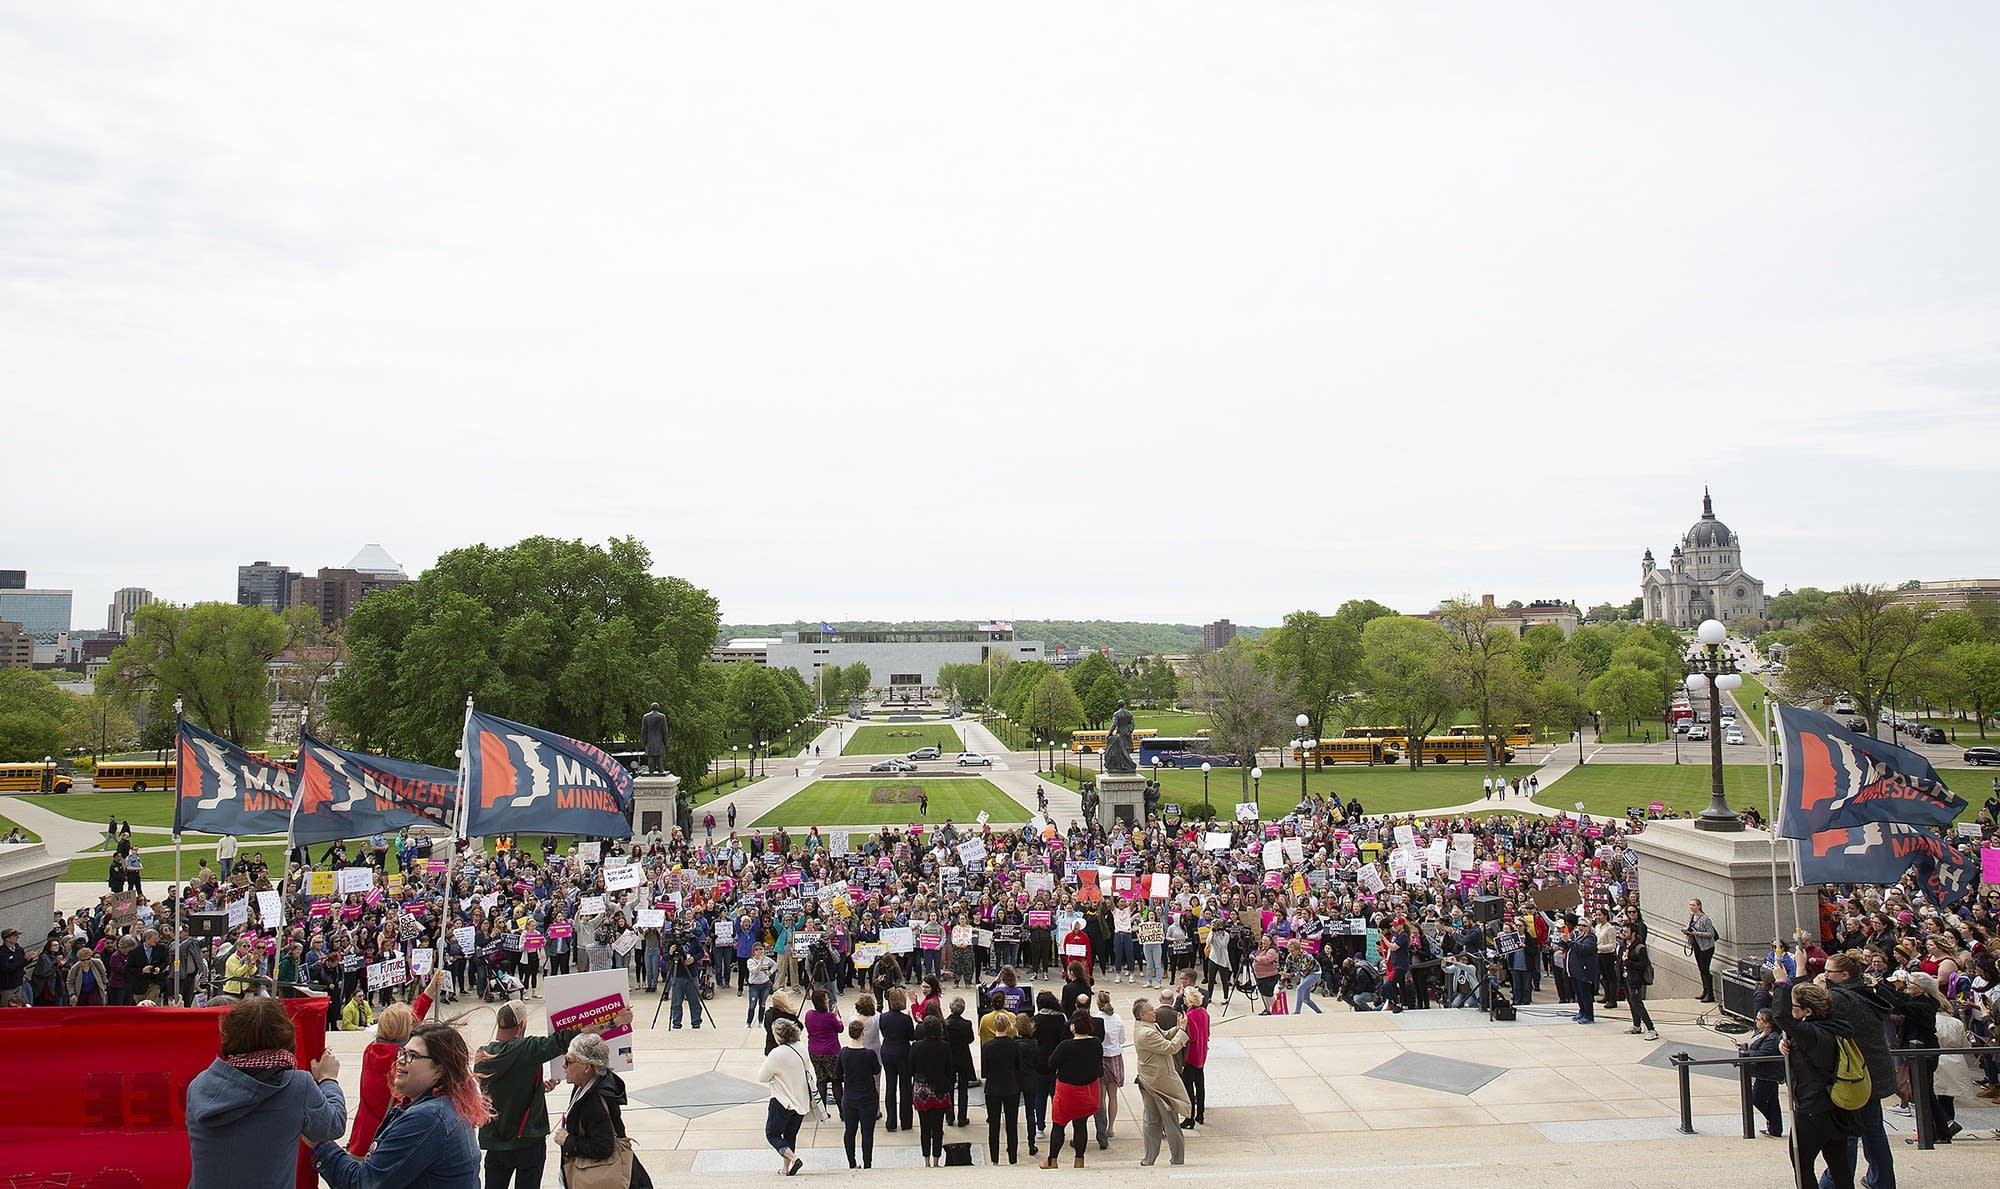 A crowd gathered for a protest against abortion bans at the state Capitol.